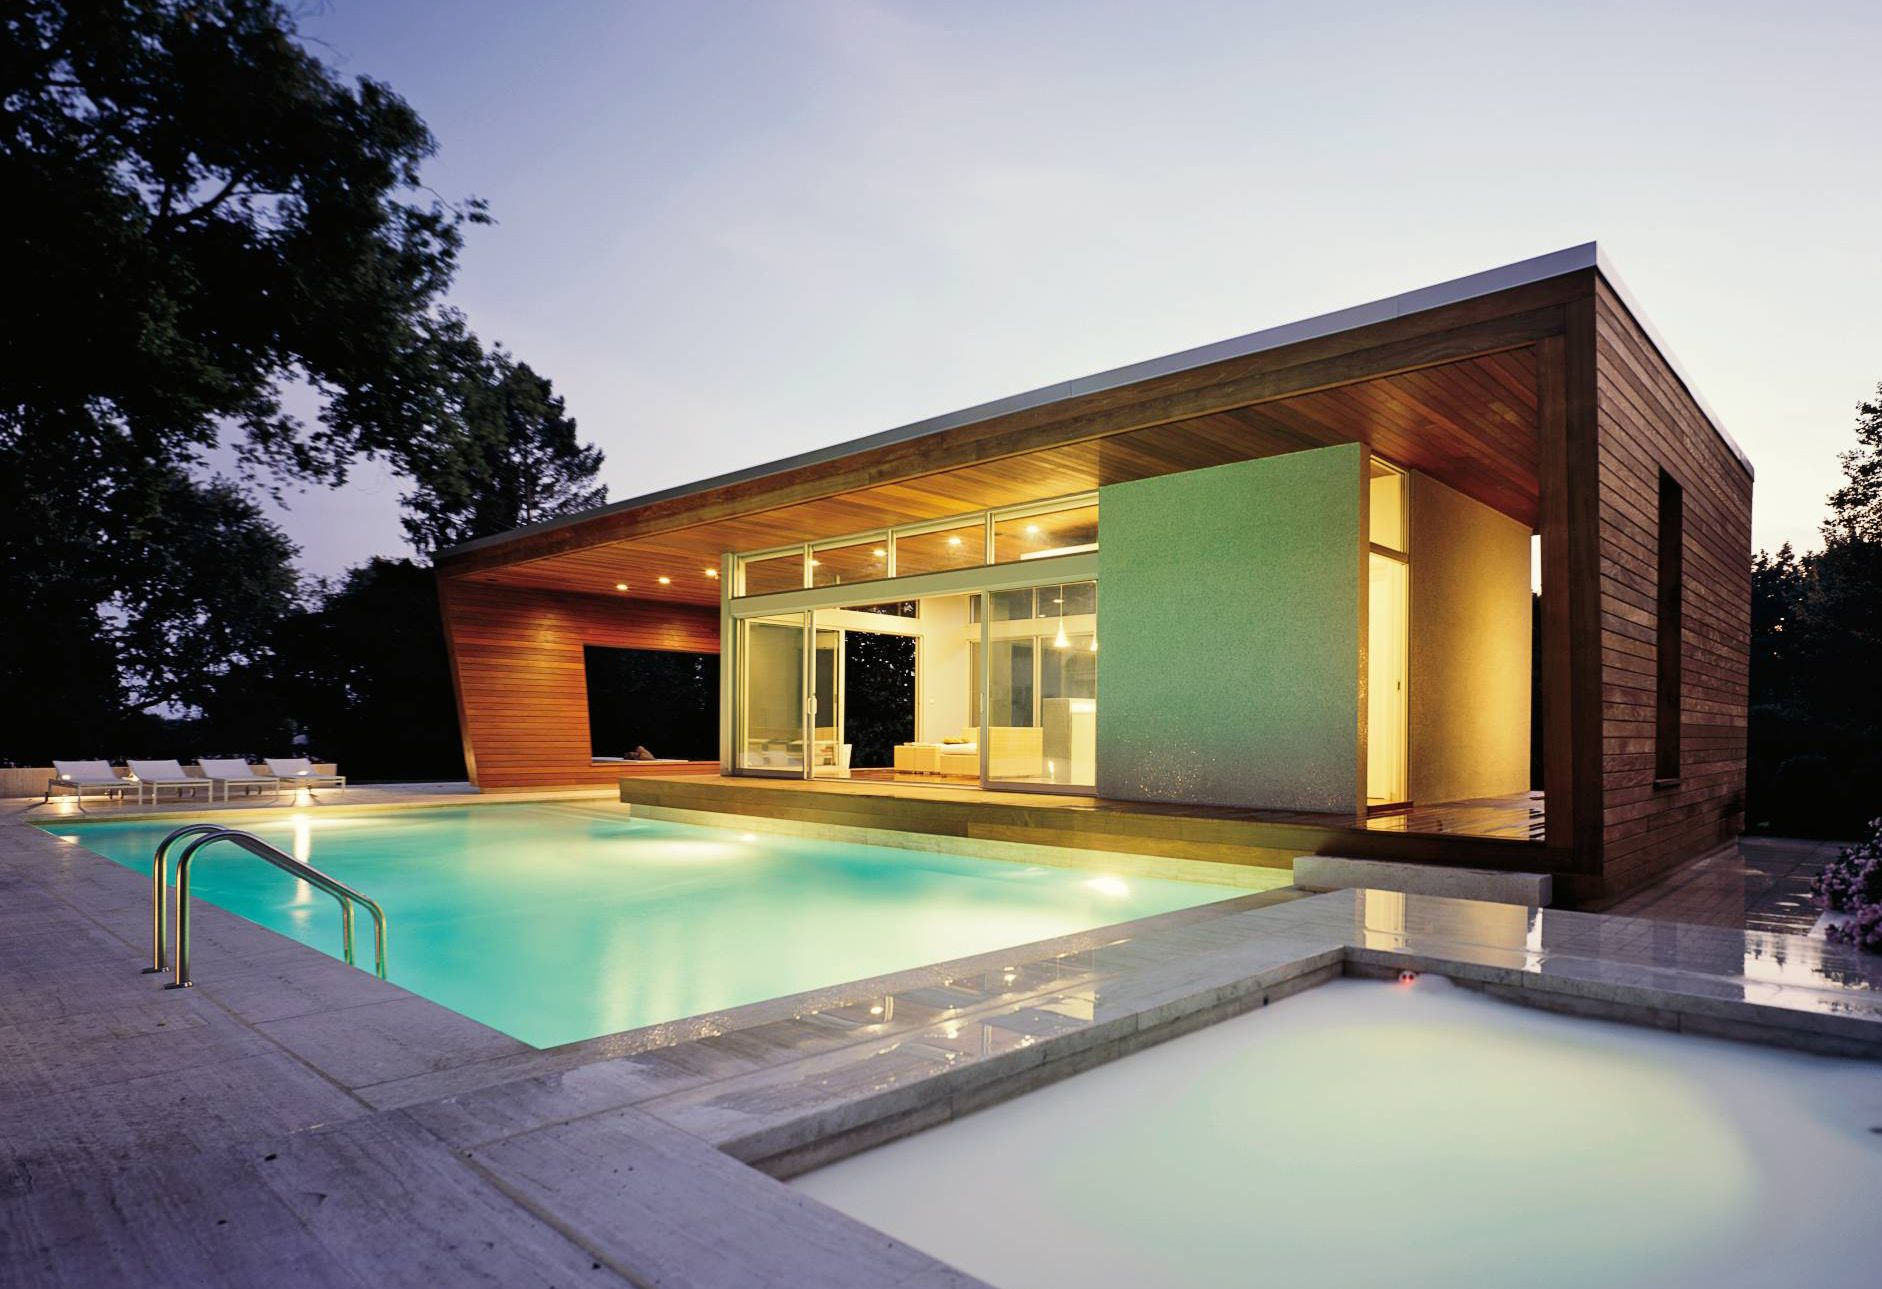 Scenic Outdoor Modern Swimming Pool Design On The Yard Of Contemporary Open House With Terrific Pool House Designs Modern Pool House Modern Architecture House